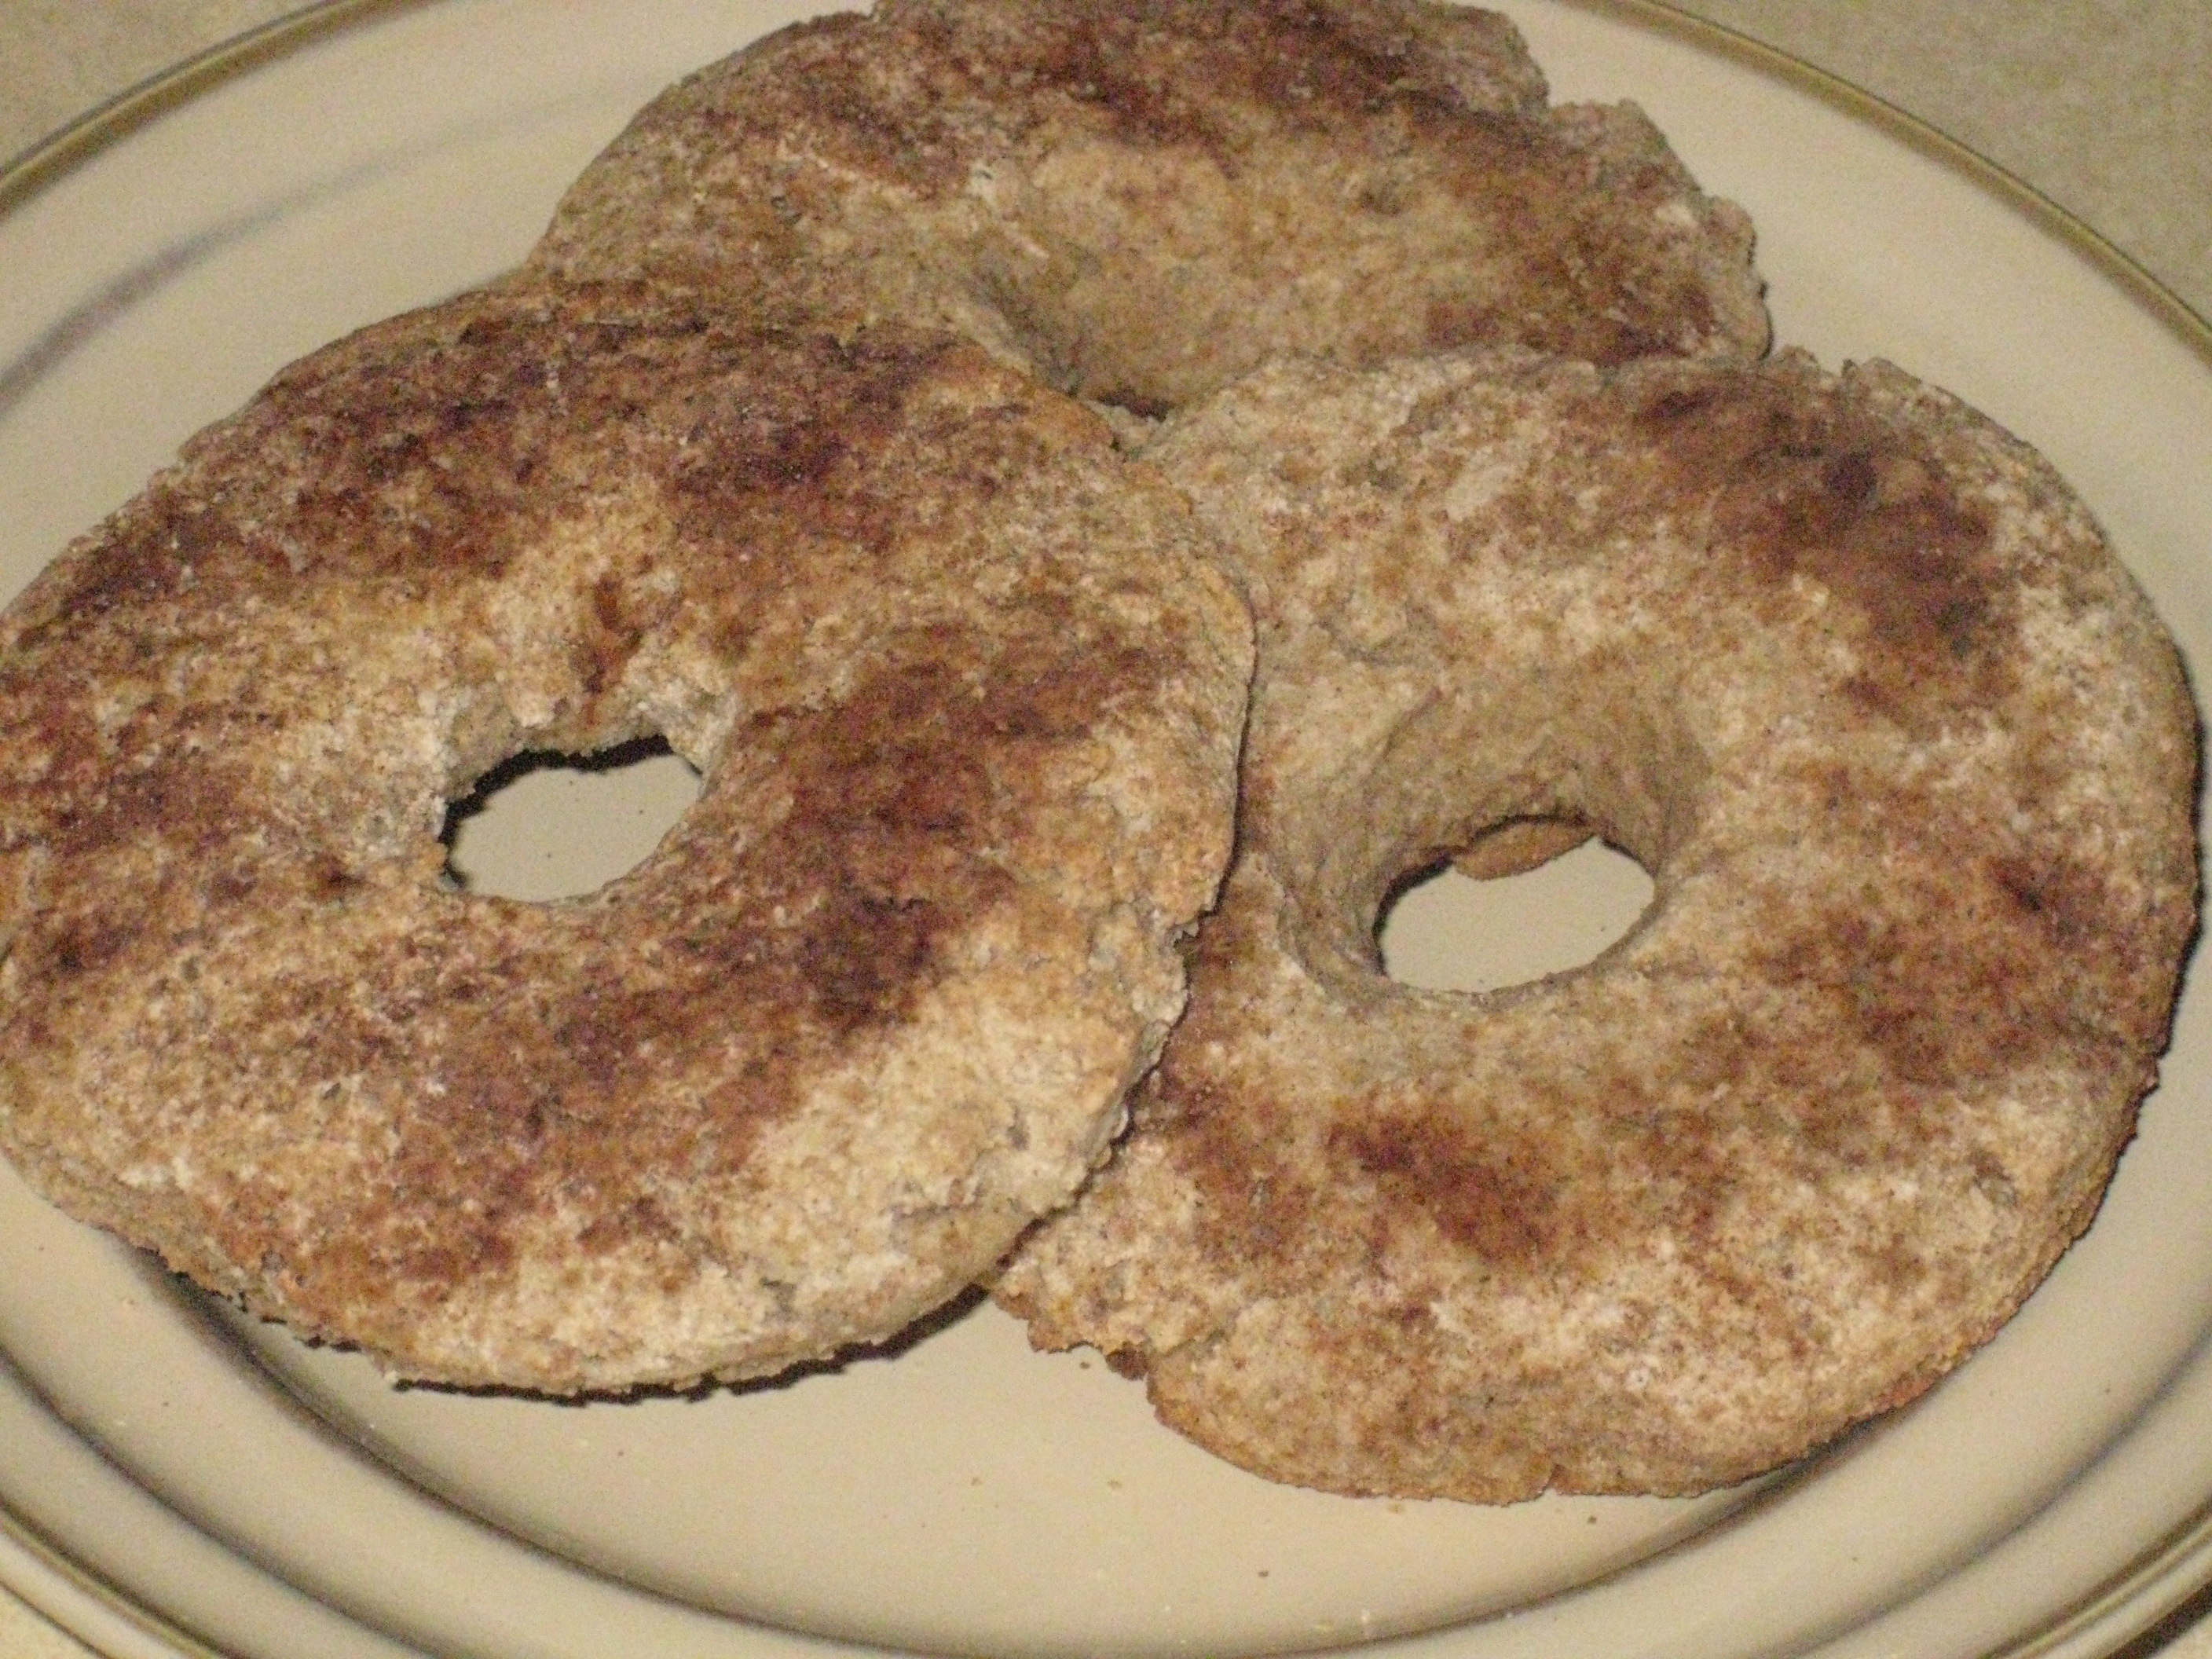 Baked Whole Grain Gluten-Free Doughnuts